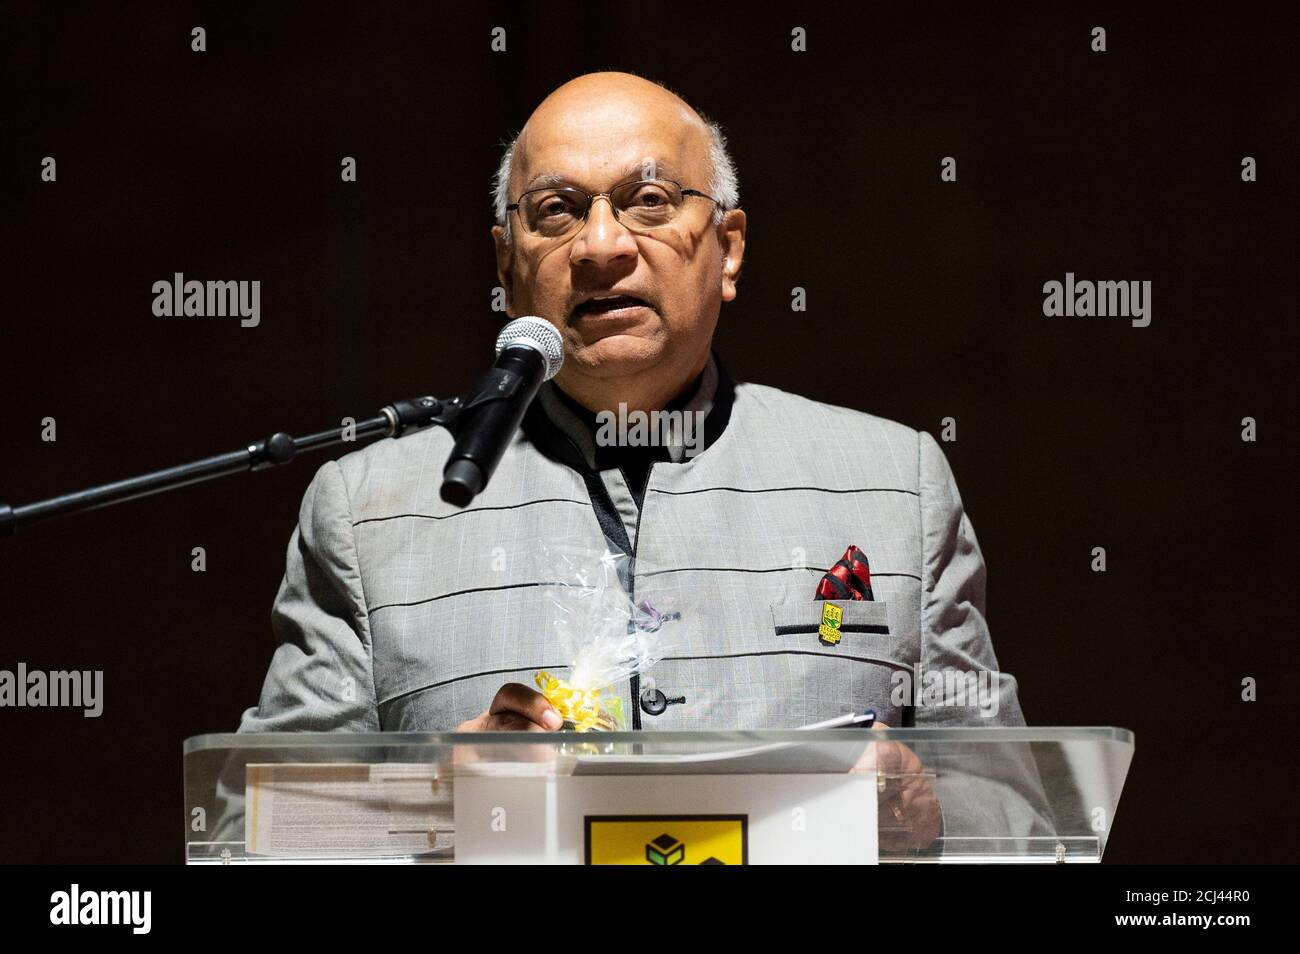 Wilmington, DE, USA. 14th Sep, 2020. September 14, 2020 - Wilmington, DE, United States: AJIT GEORGE, Founder and Manager of Second Chances Farms, speaking at Second Chances Farms. Credit: Michael Brochstein/ZUMA Wire/Alamy Live News Stock Photo